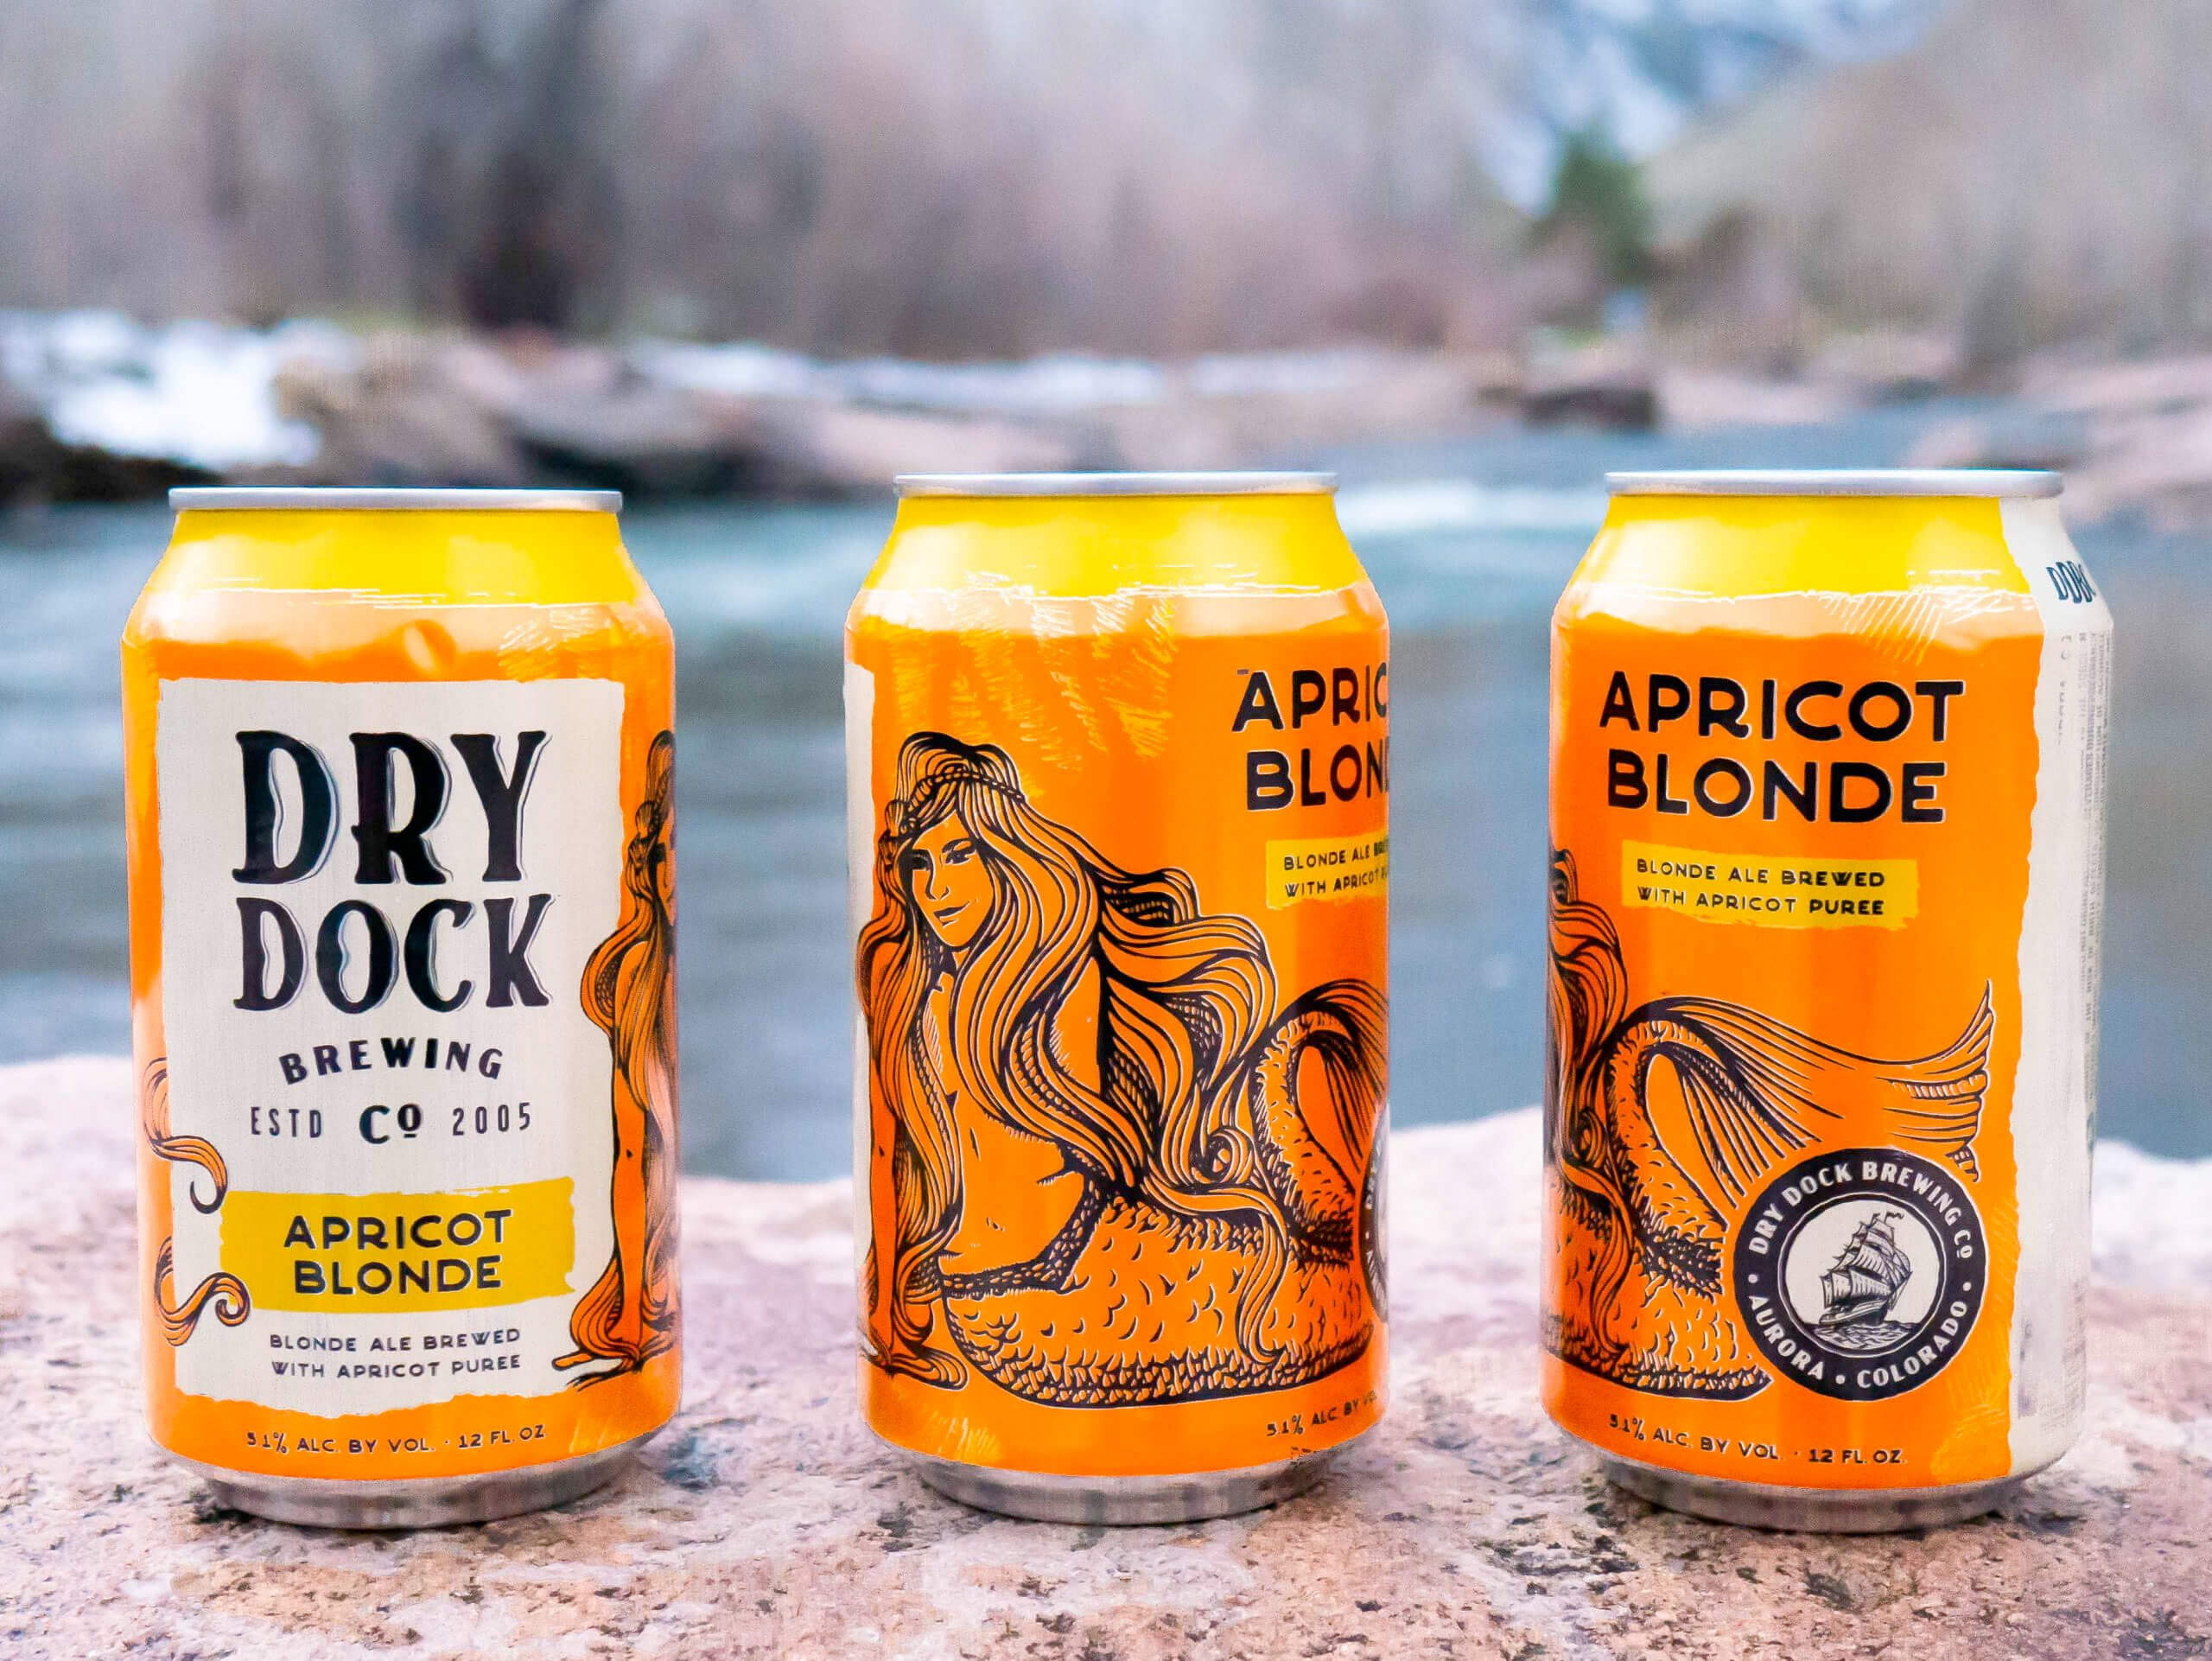 Redesigned cans of the Apricot Blonde by Dry Dock Brewing Company